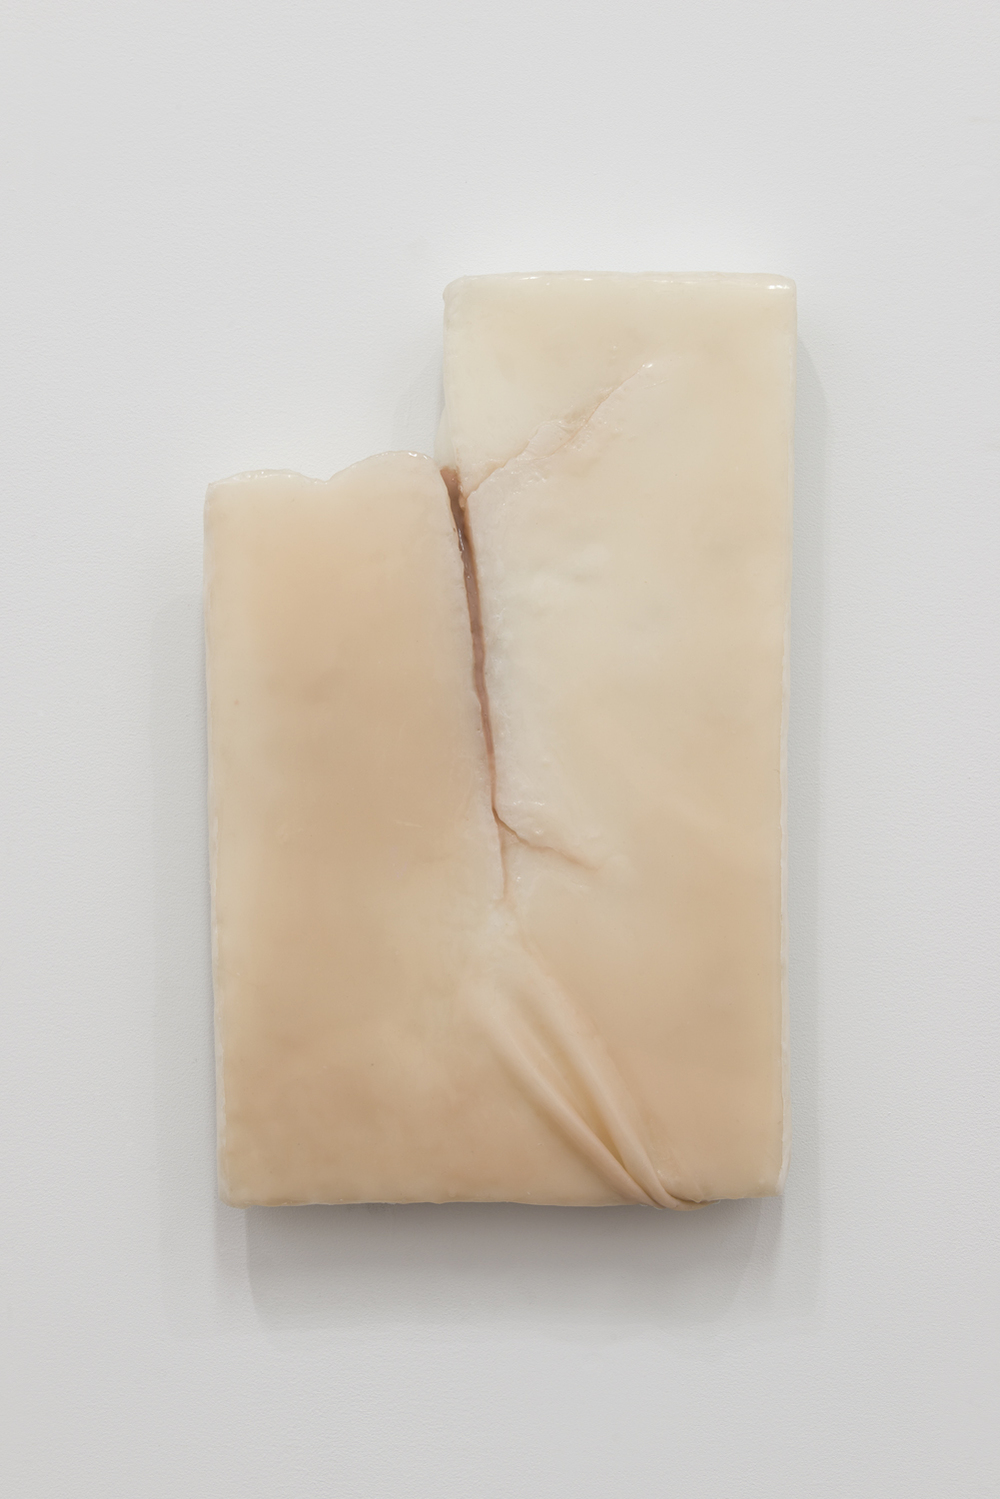 Ivana Basic, Ungrounding, 2014